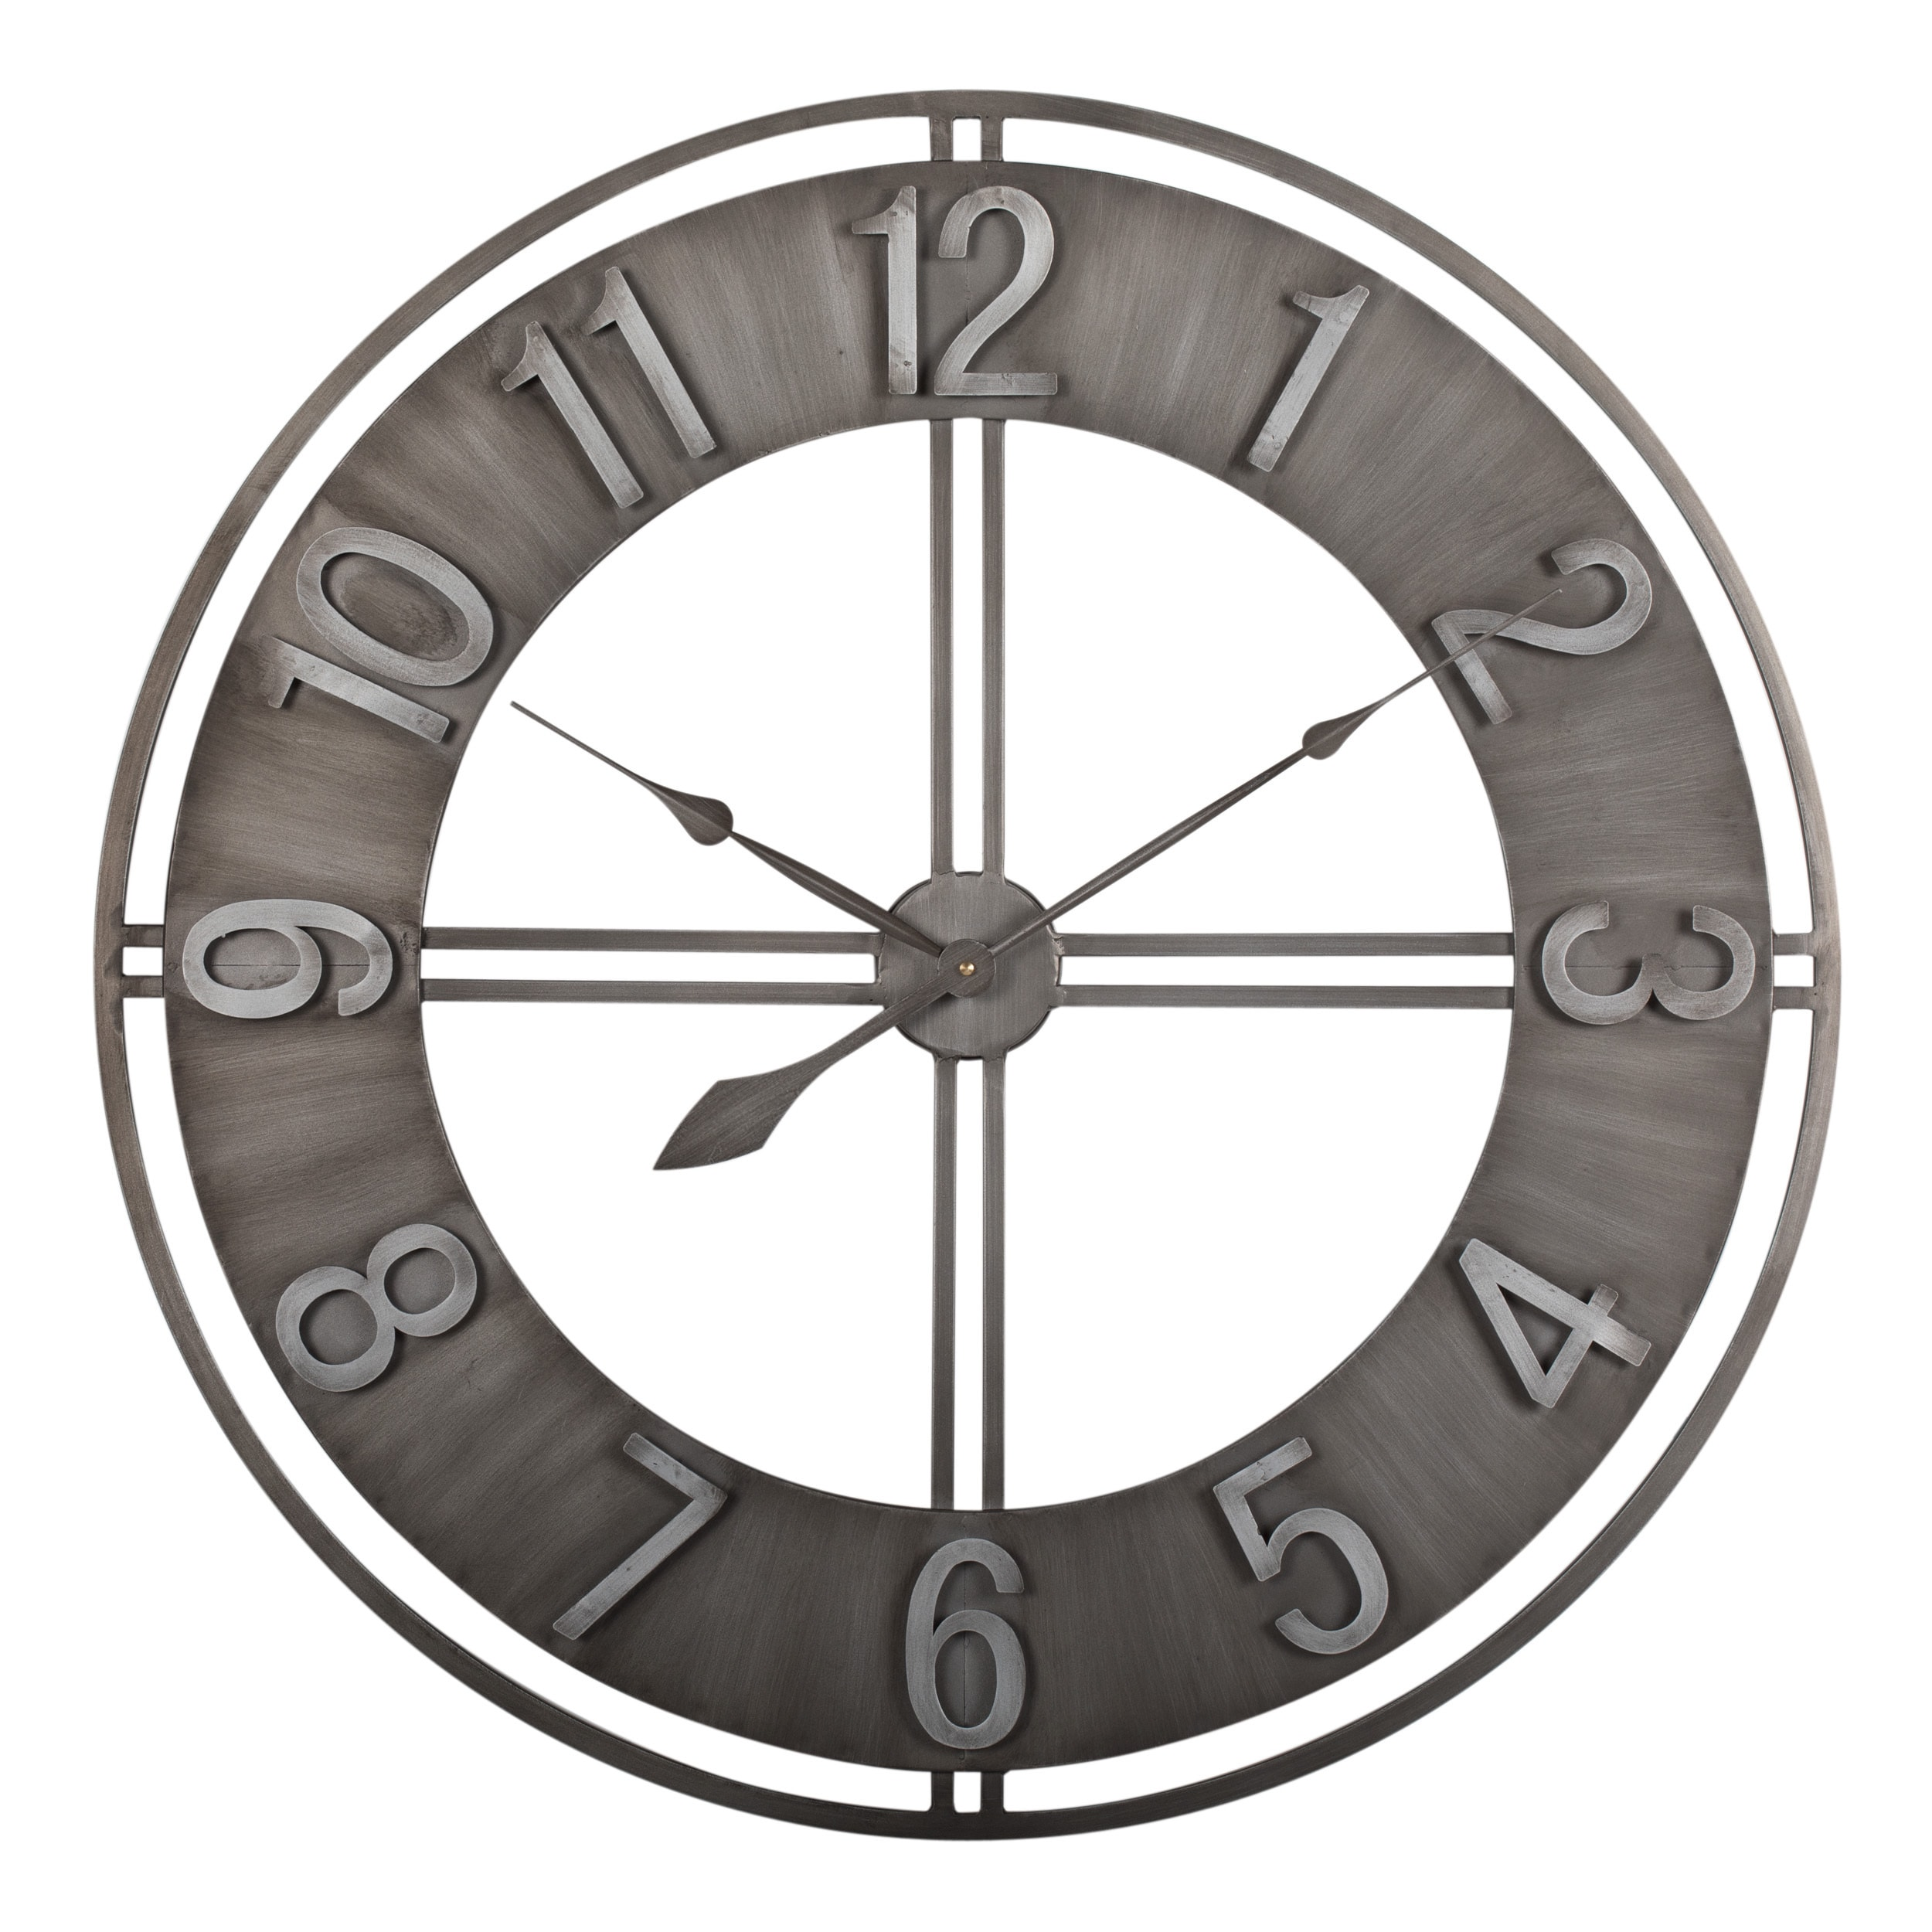 30 wall clock rustic shop carbon loft maunchly metal 30inch industrial wall clock on sale free shipping today overstockcom 22801466